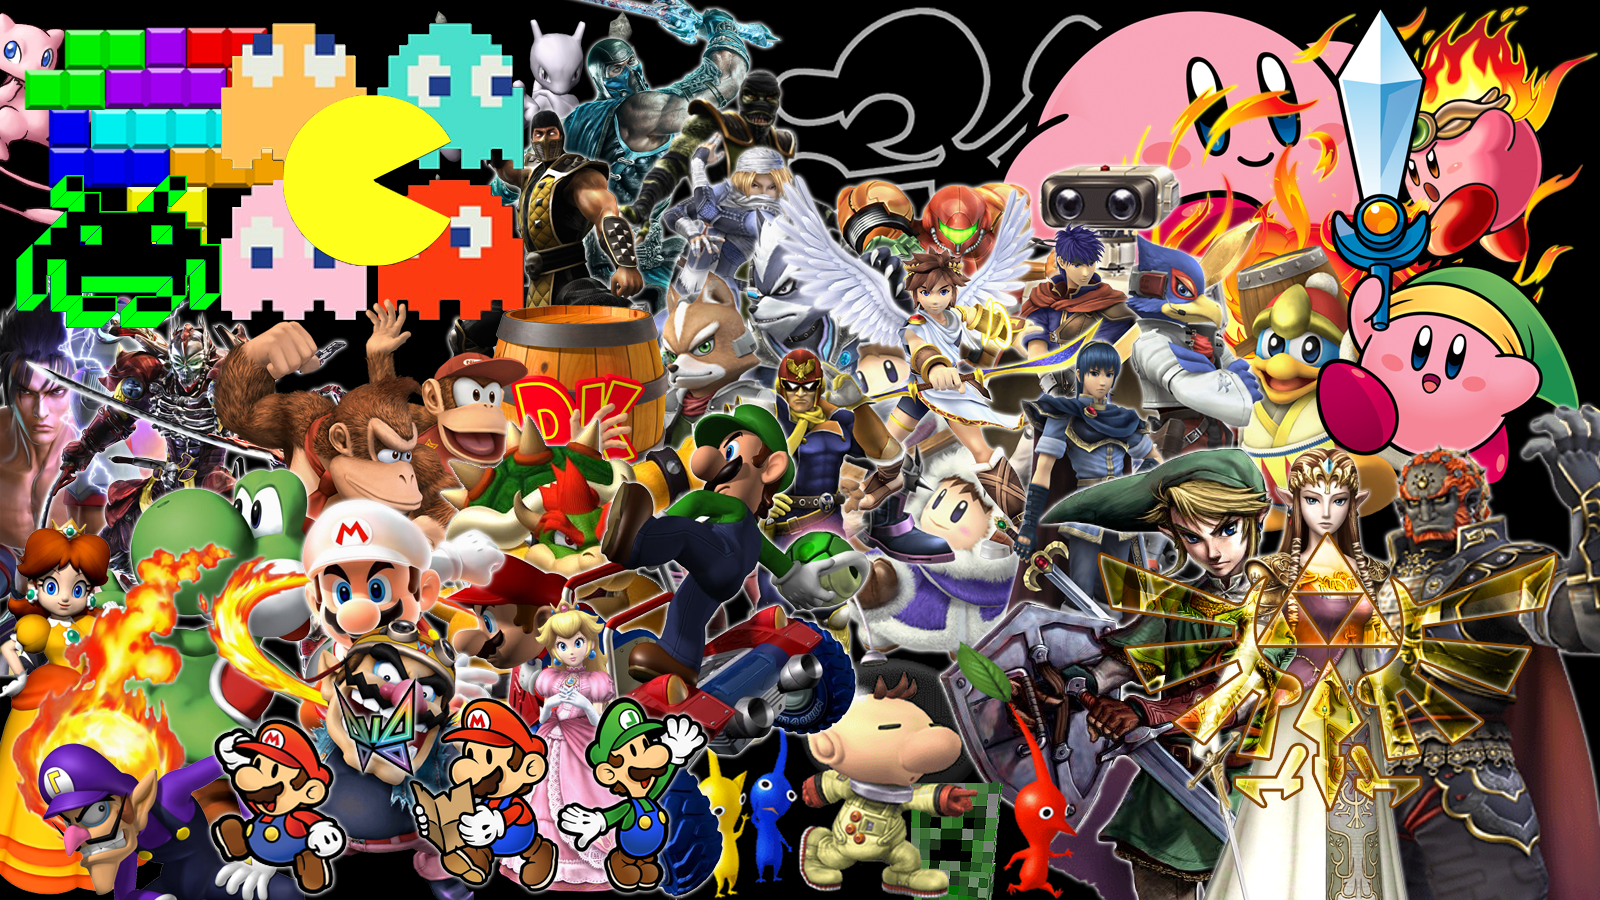 Video Game Characters Wallpaper Hd Background 23 HD Wallpapers